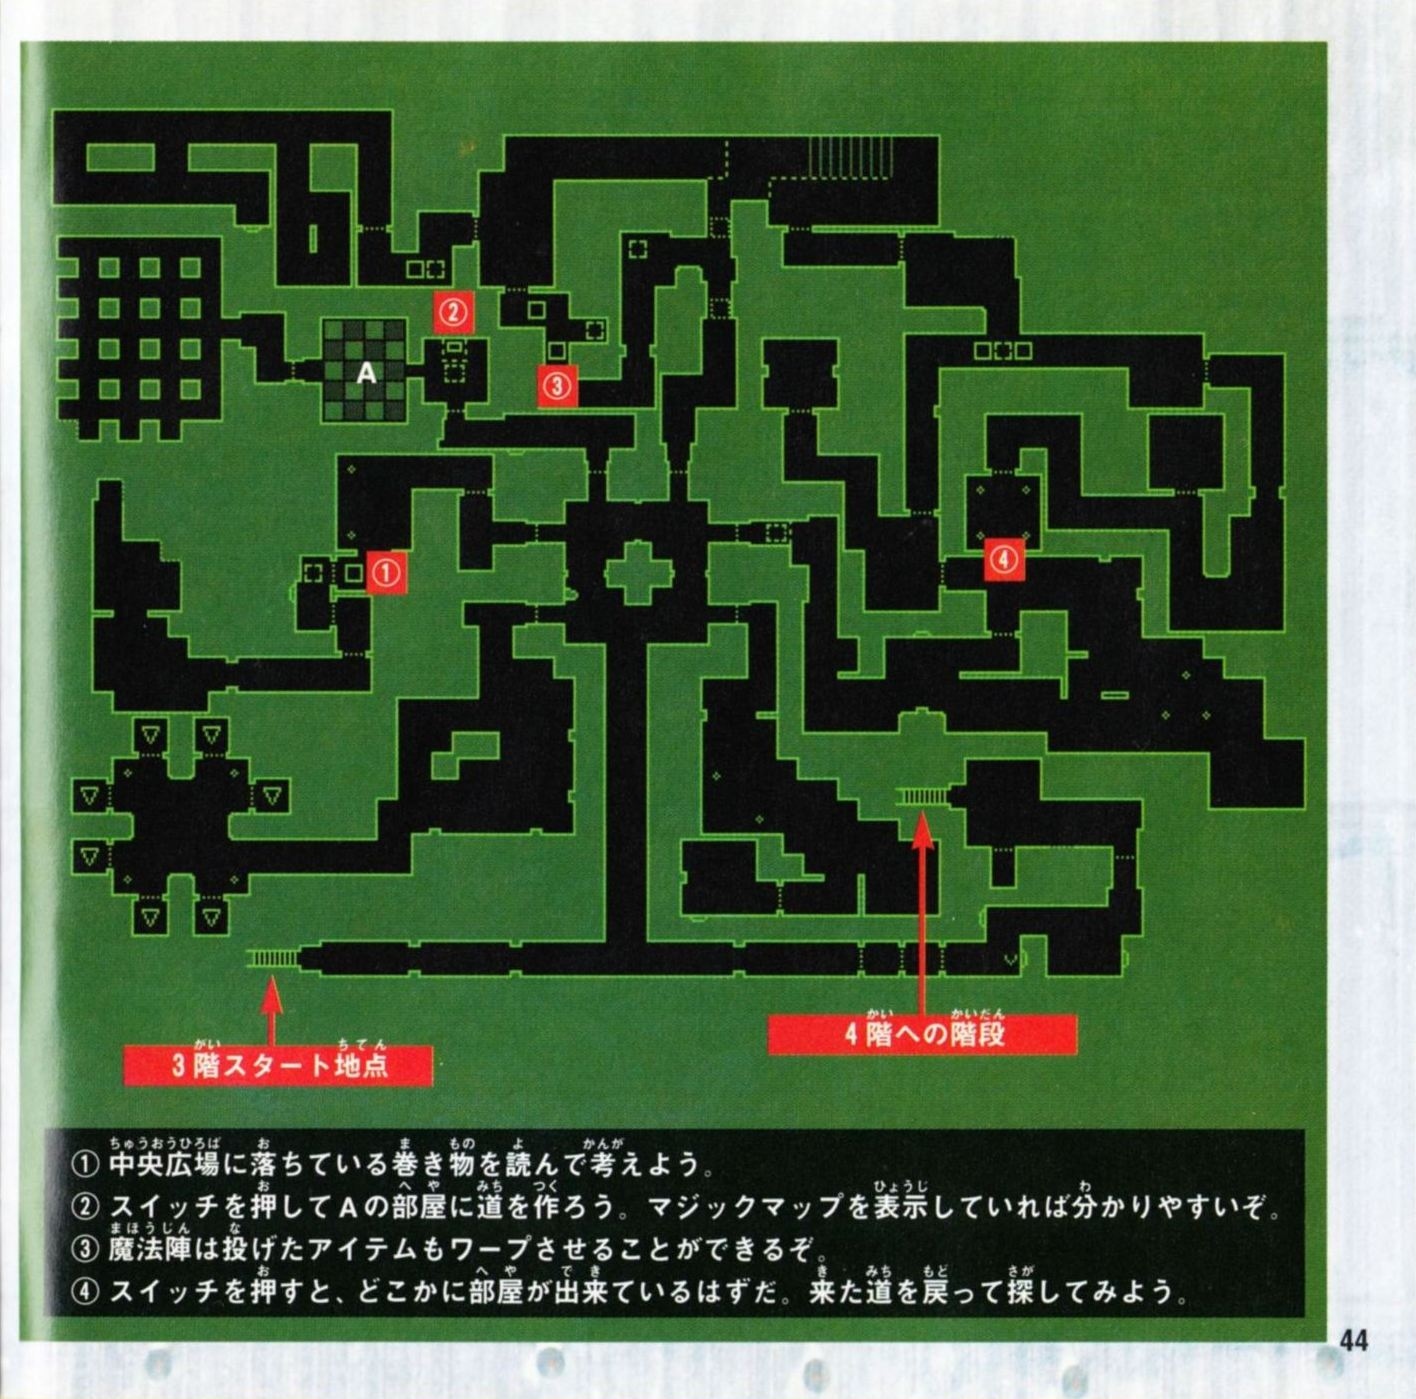 Game - Dungeon Master Nexus - JP - Sega Saturn - Booklet - Page 045 - Scan